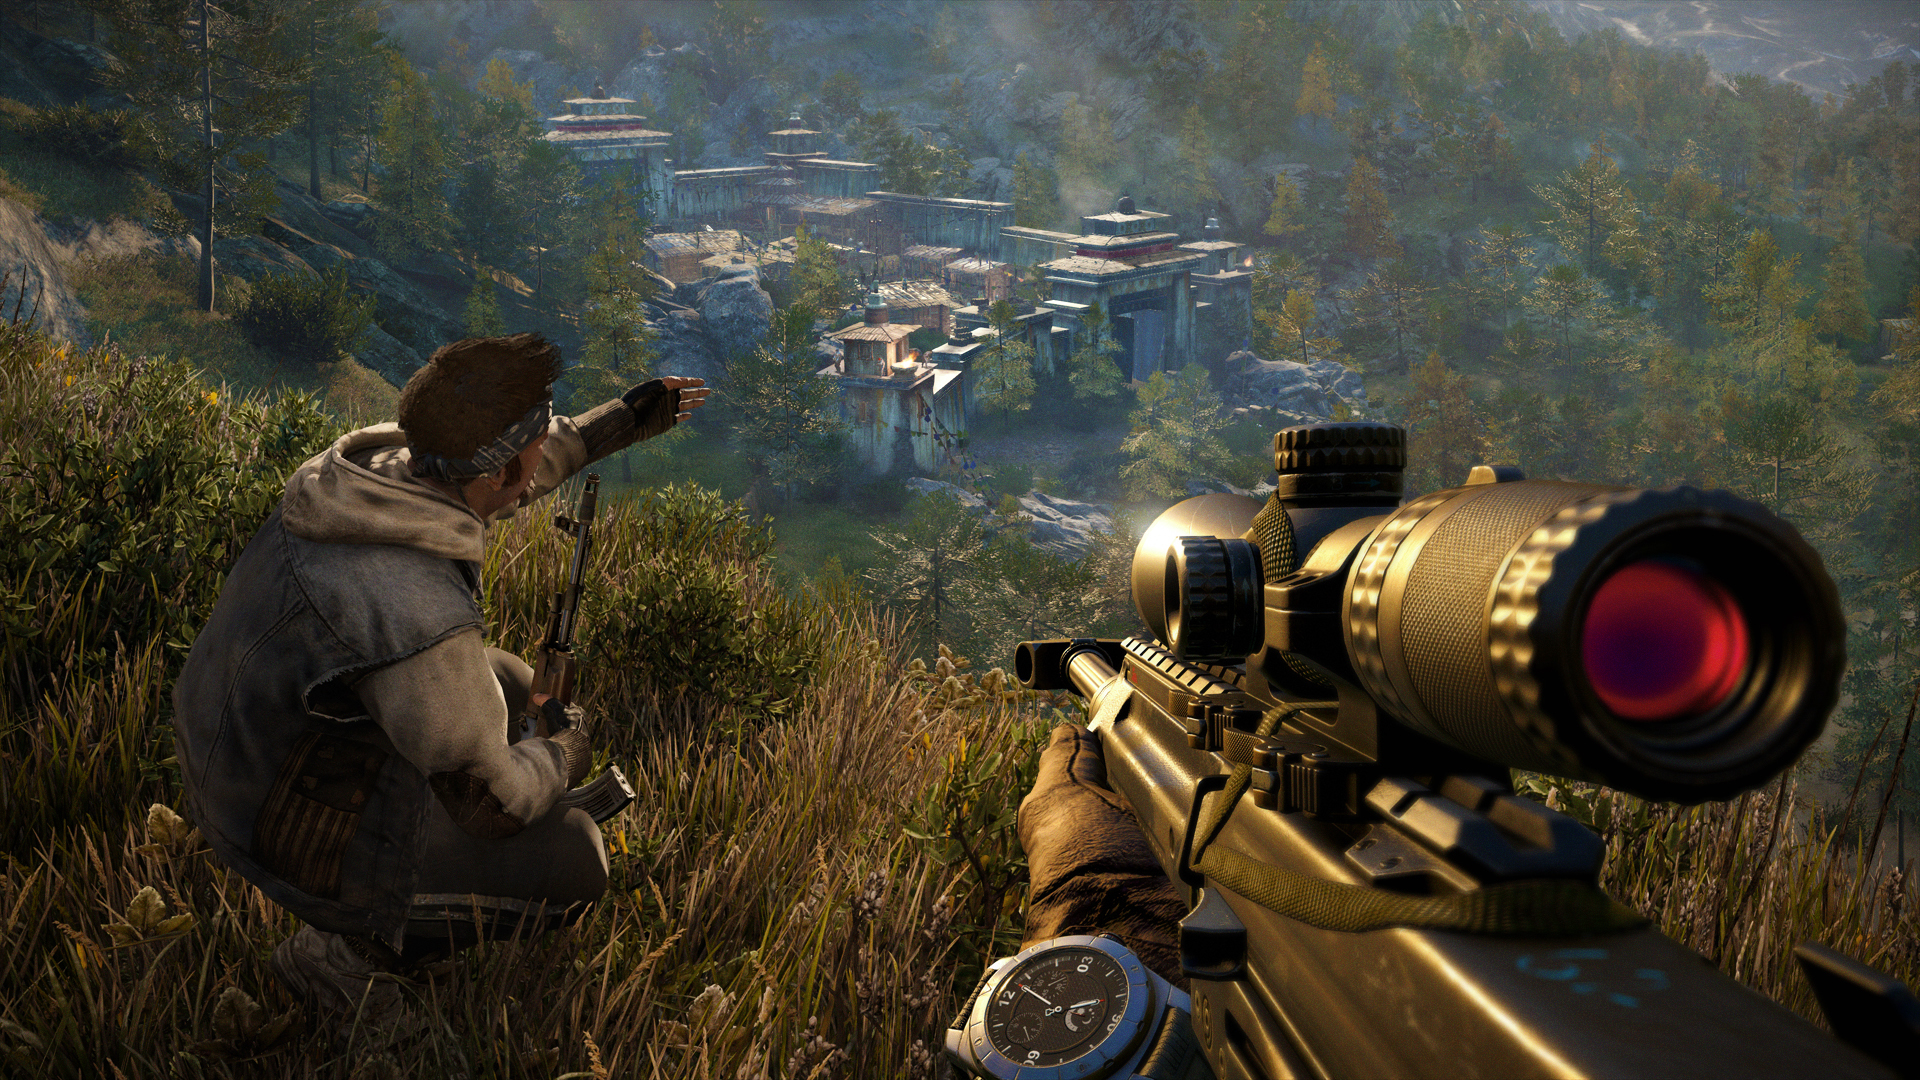 Far Cry 4 Wallpaper Elephant: Far Cry 4 Wallpapers, Pictures, Images